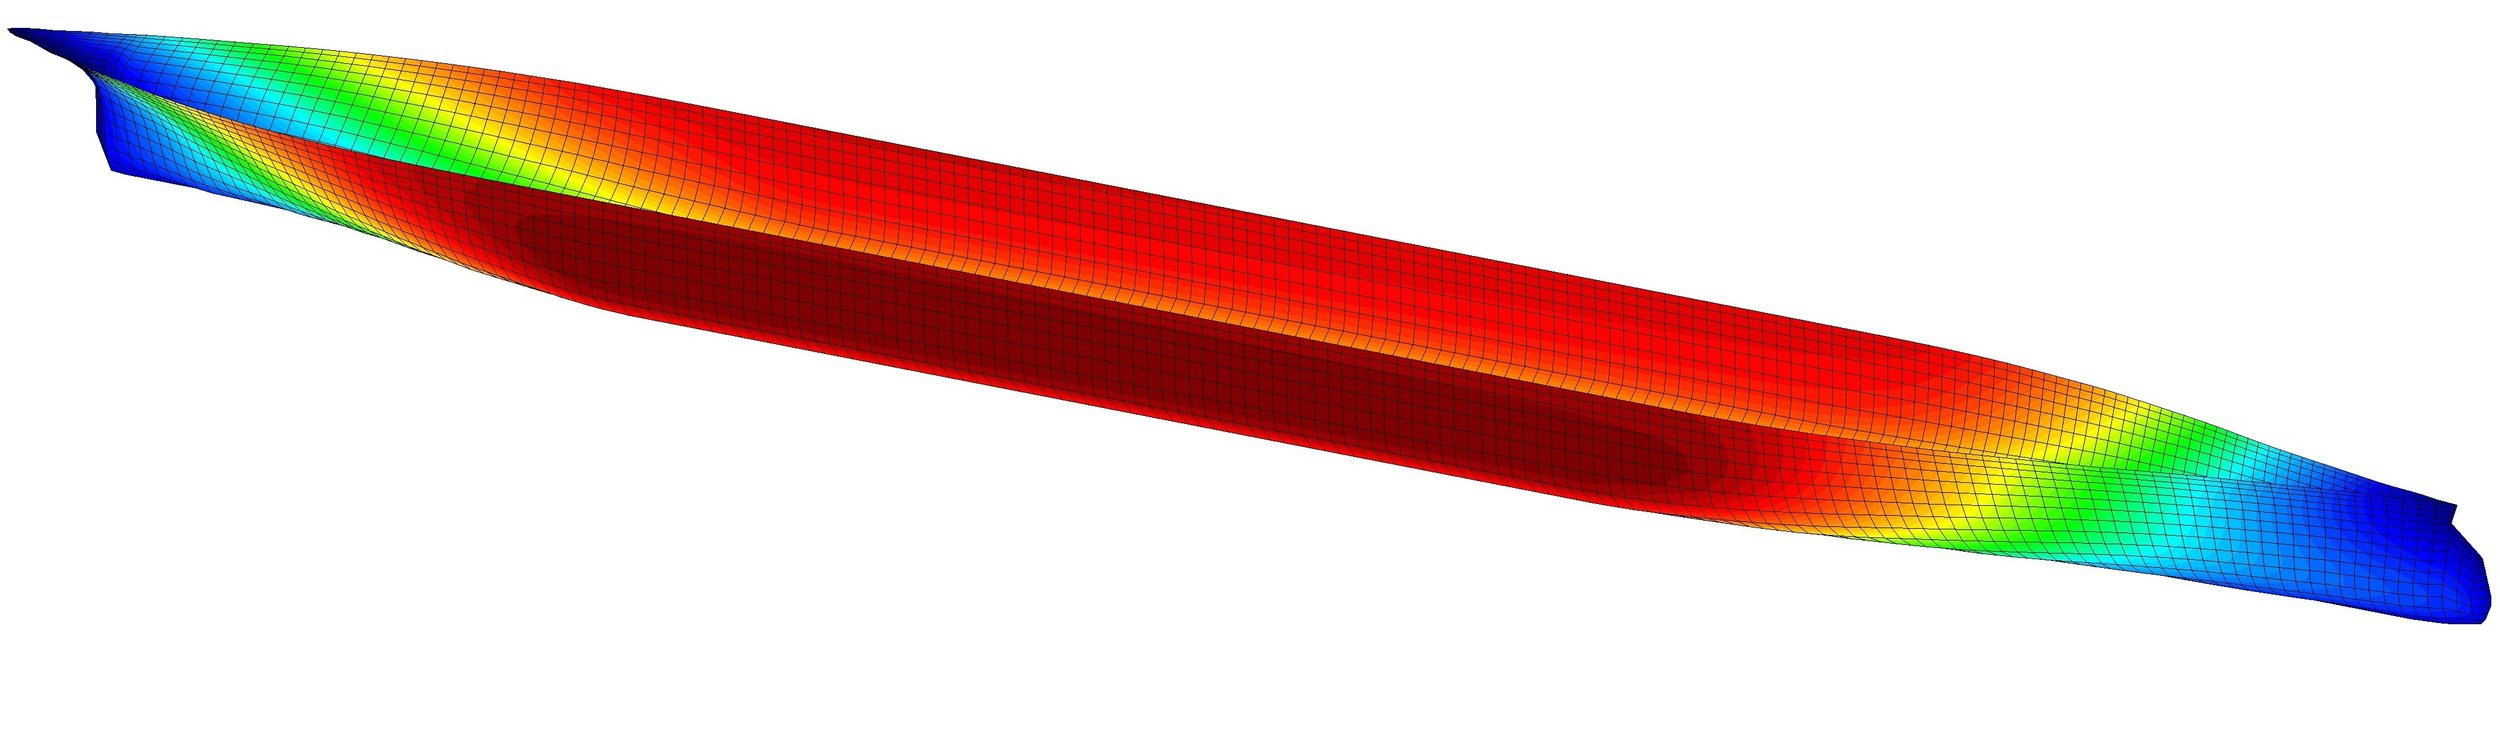 Hydrodynamic pressure distribution acting on a containership.